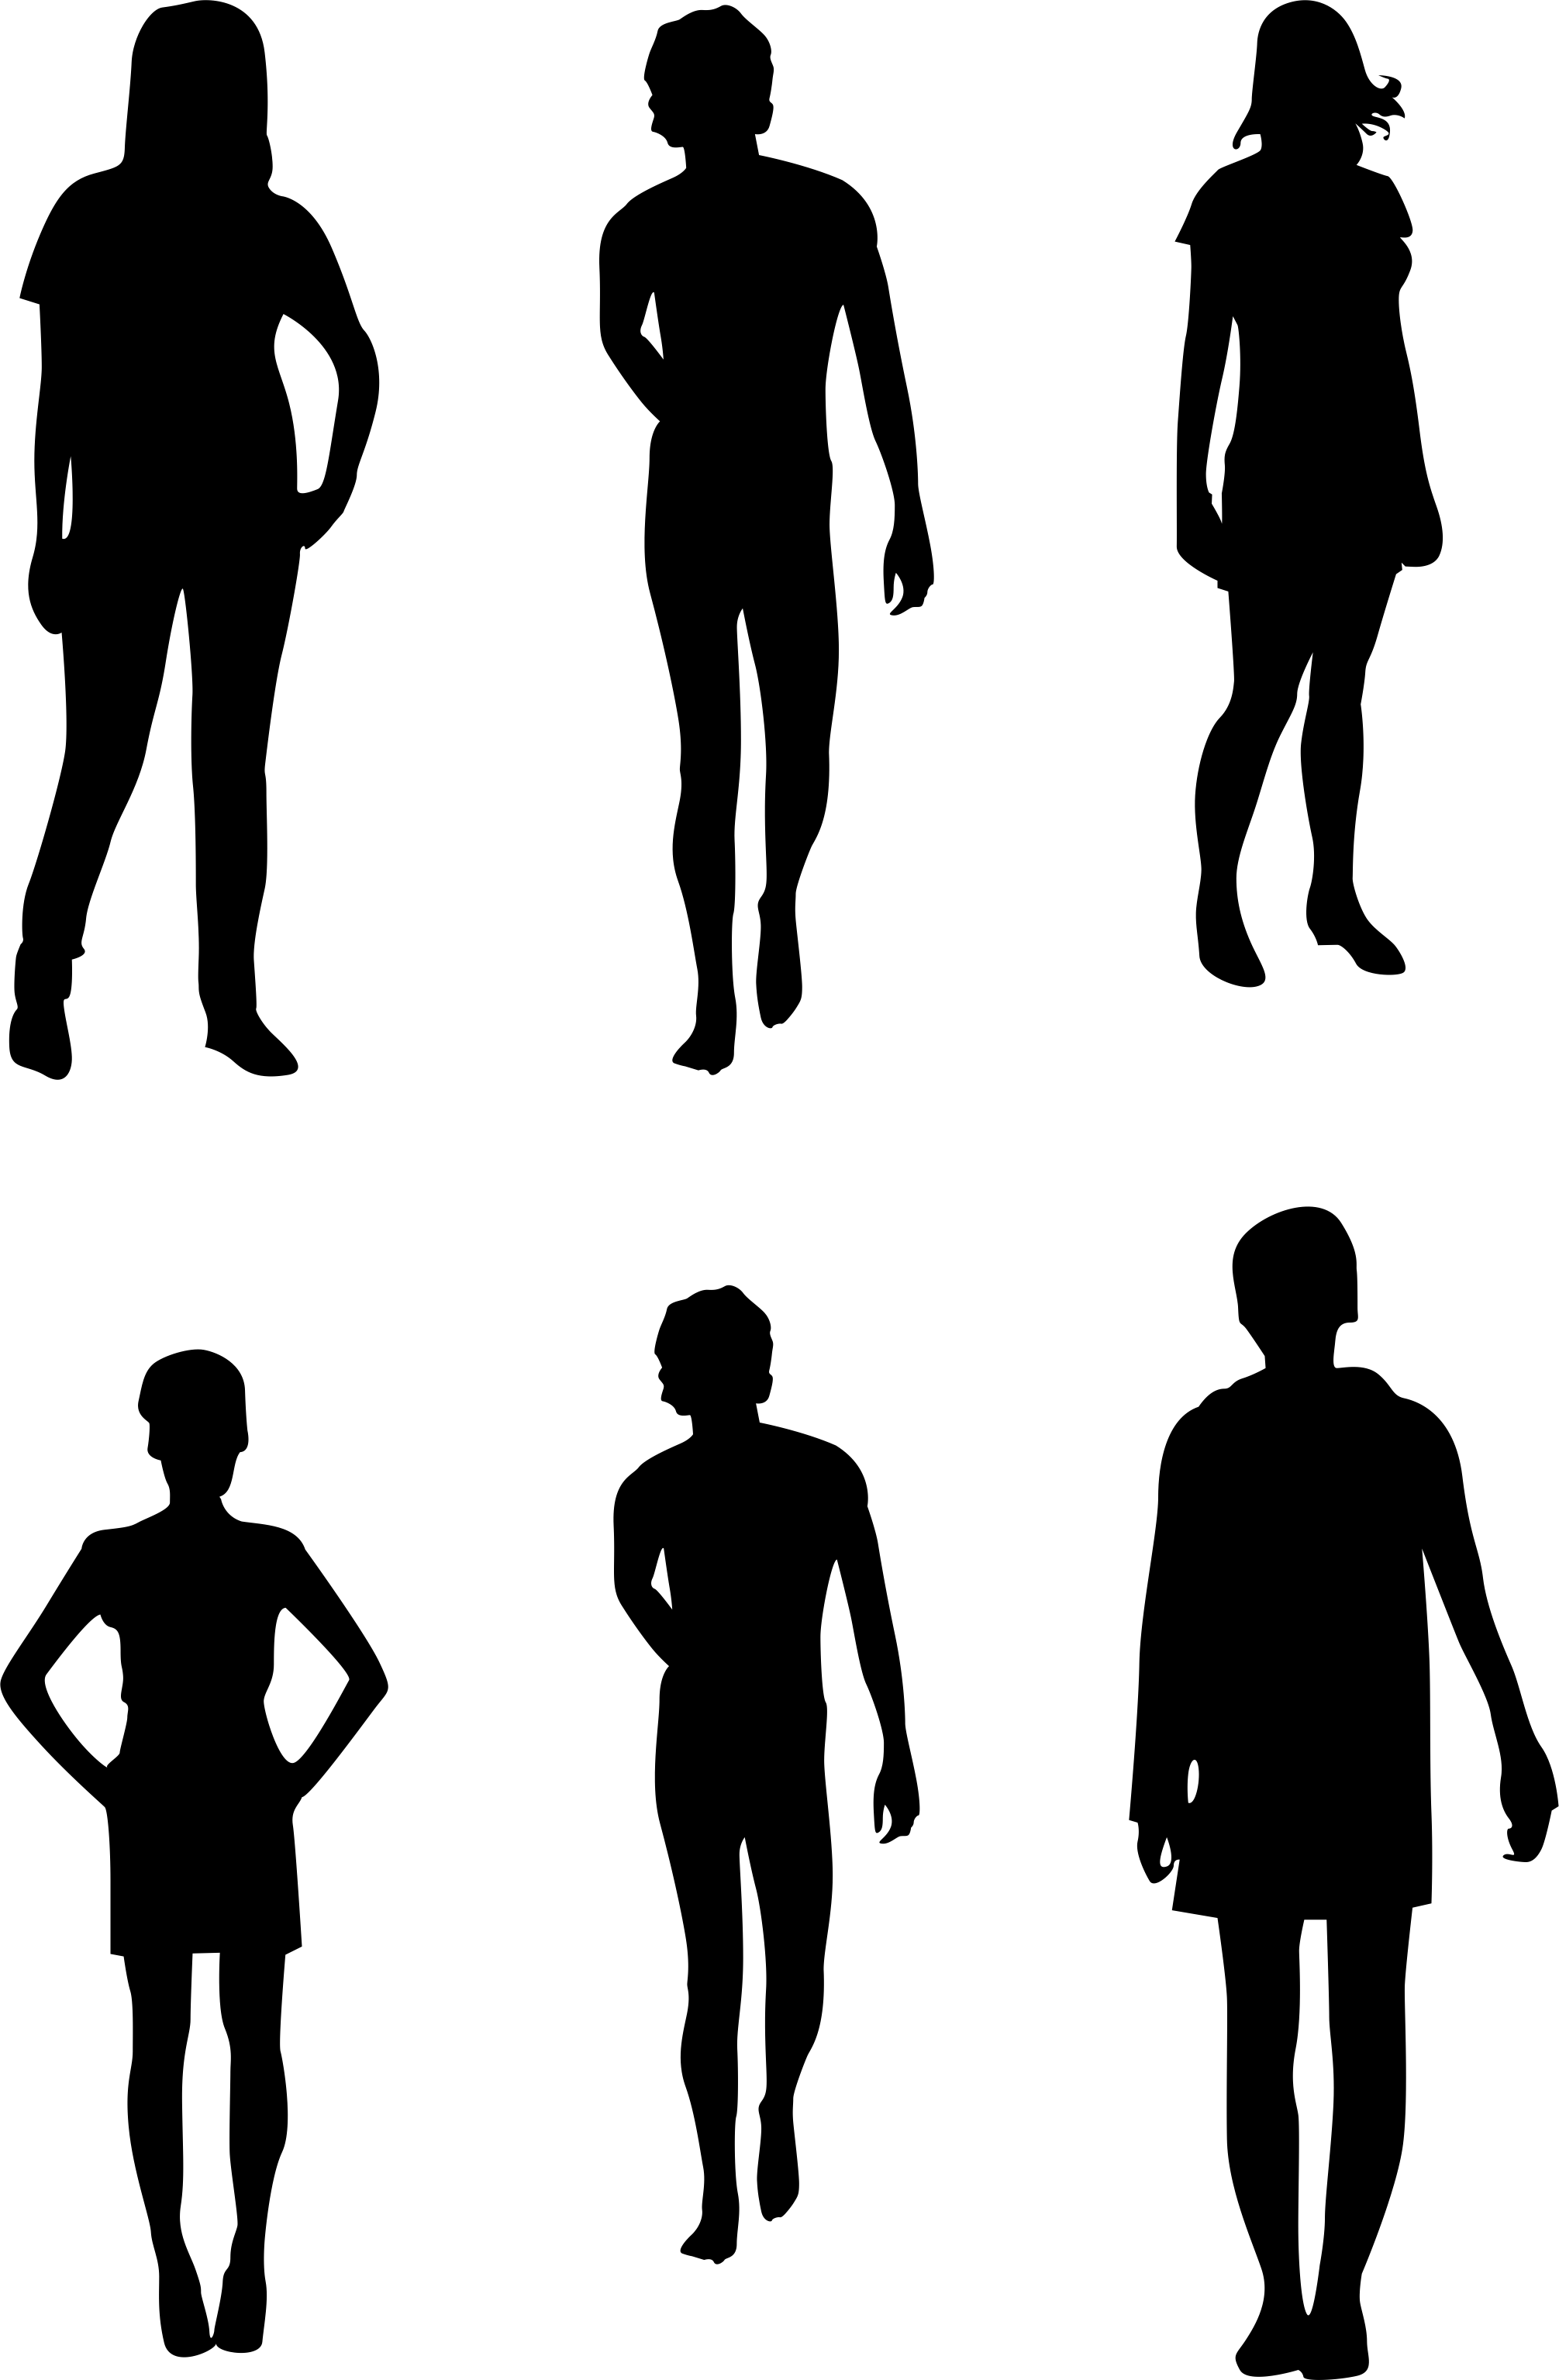 People clipart images for photoshop picture freeuse download photoshop people silhouettes - Clip Art Library picture freeuse download